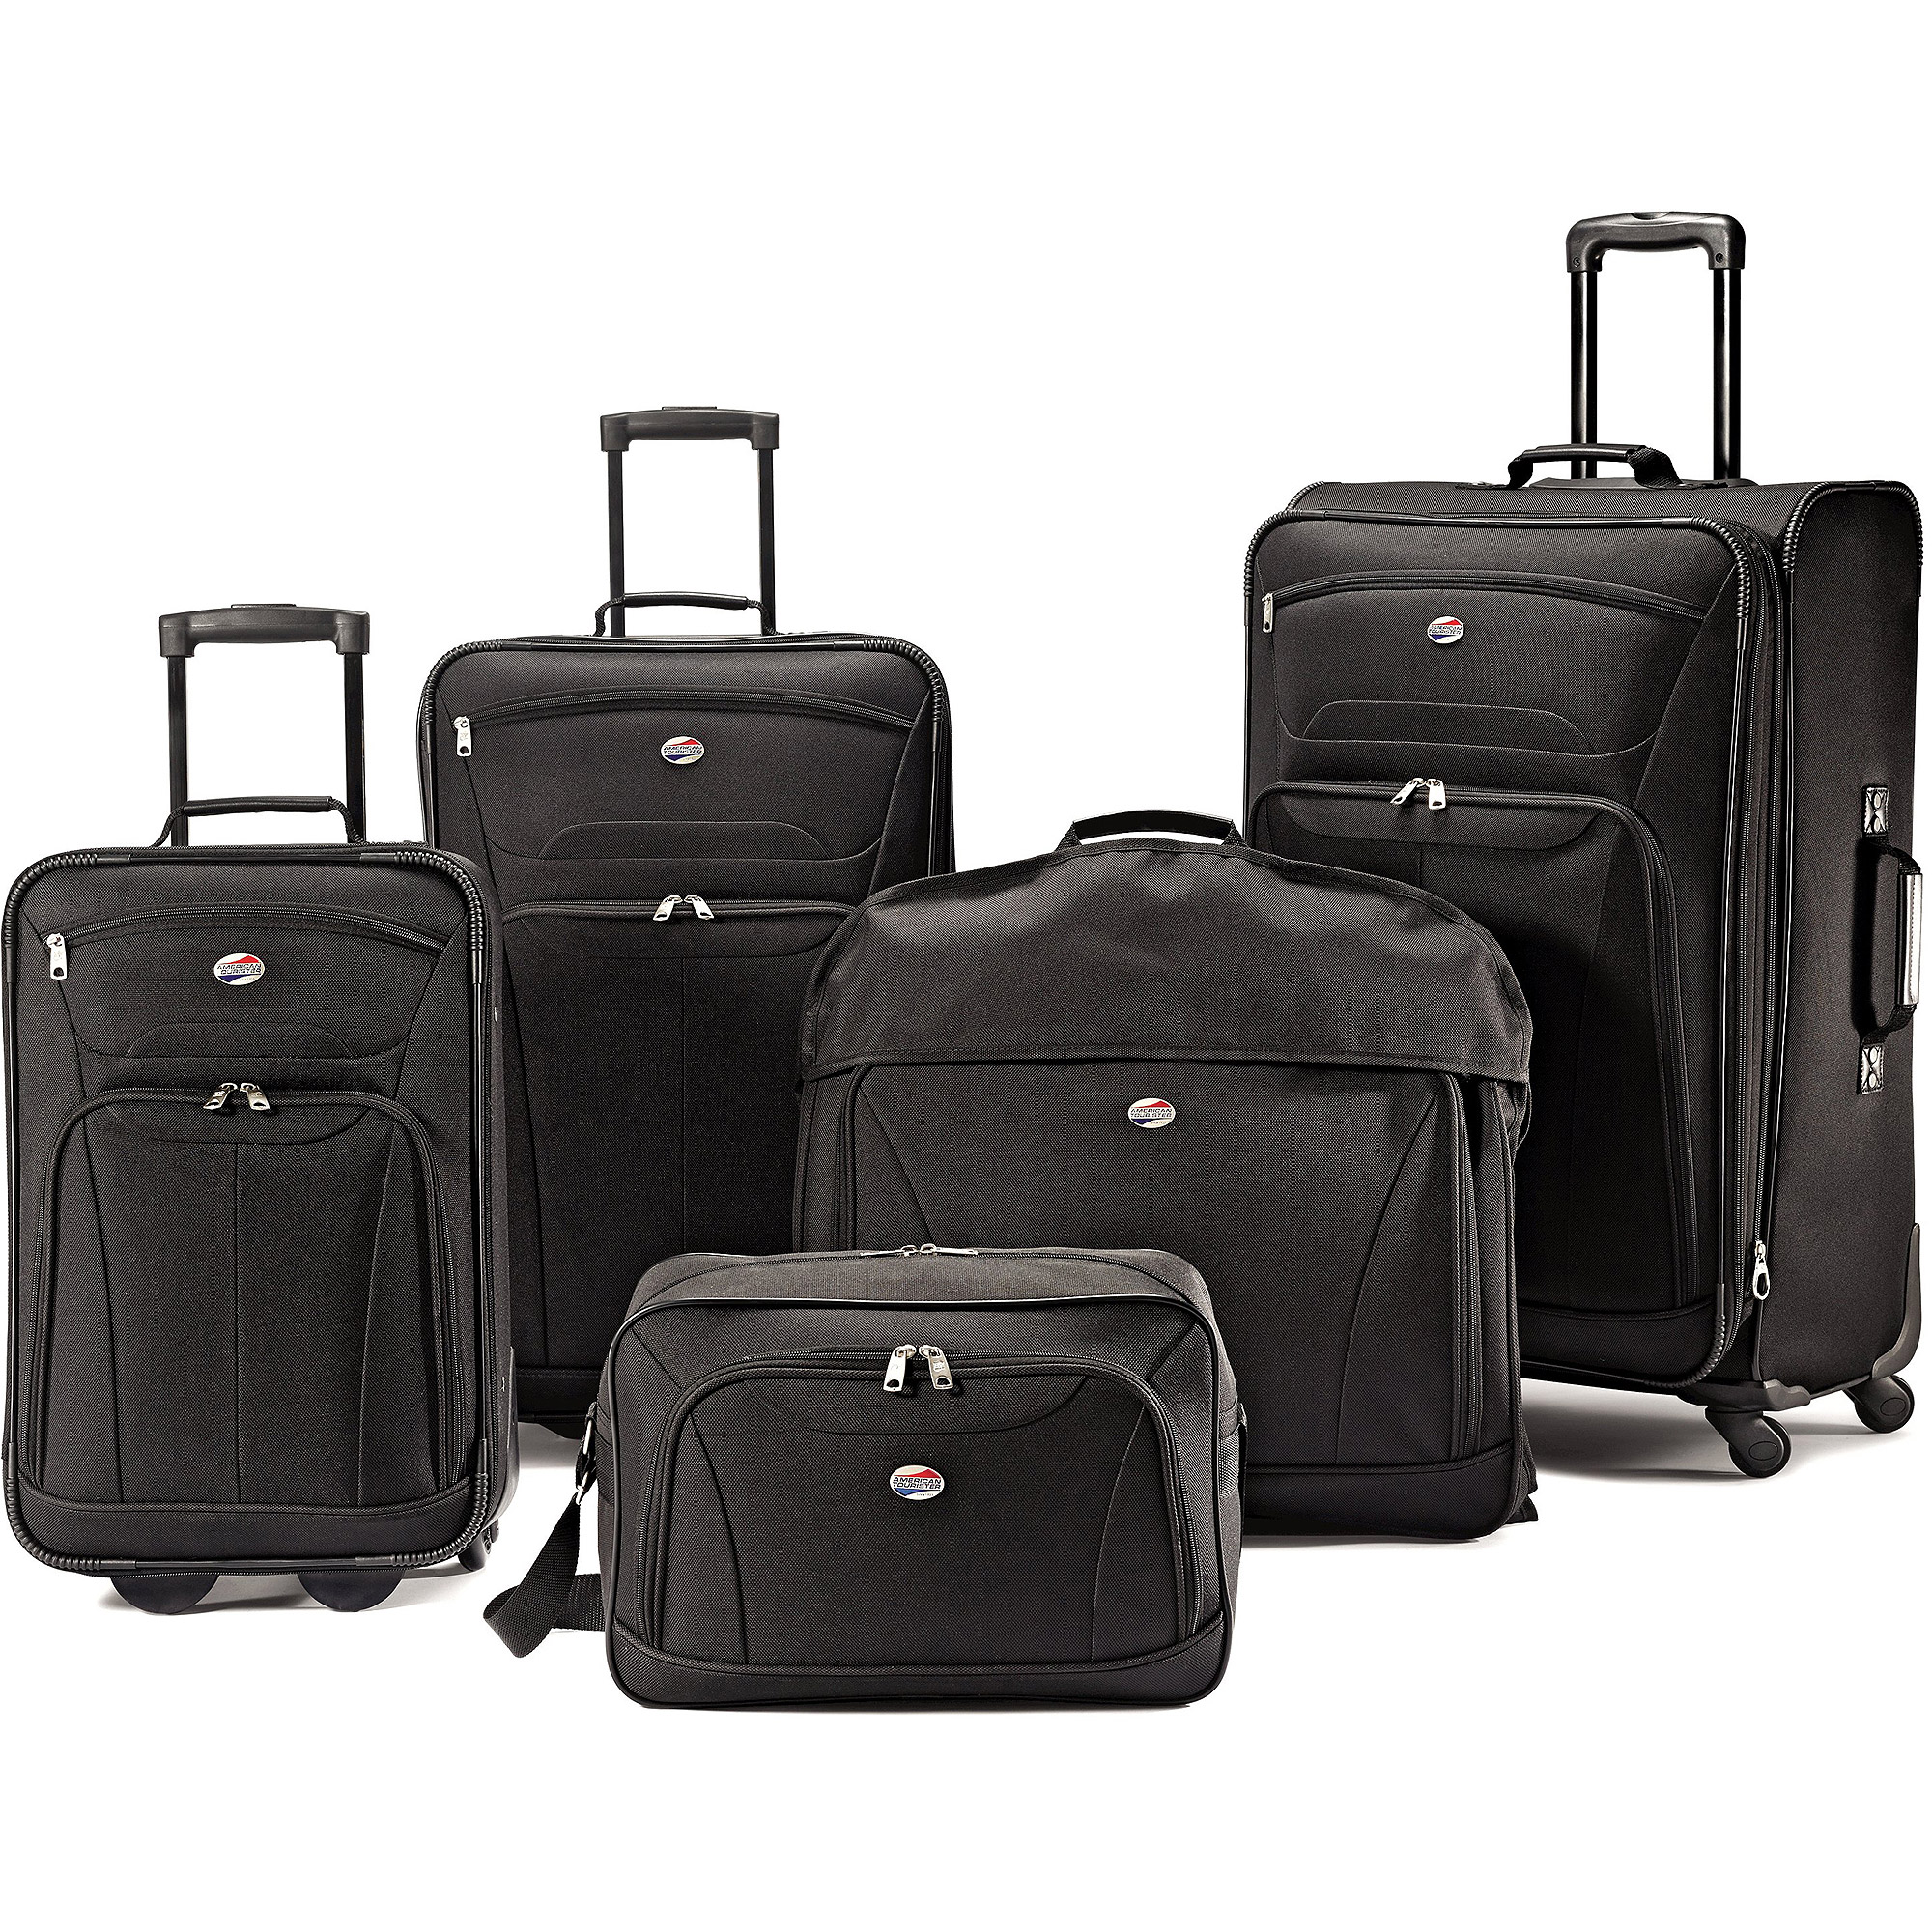 American Tourister 5-Piece Luggage Set